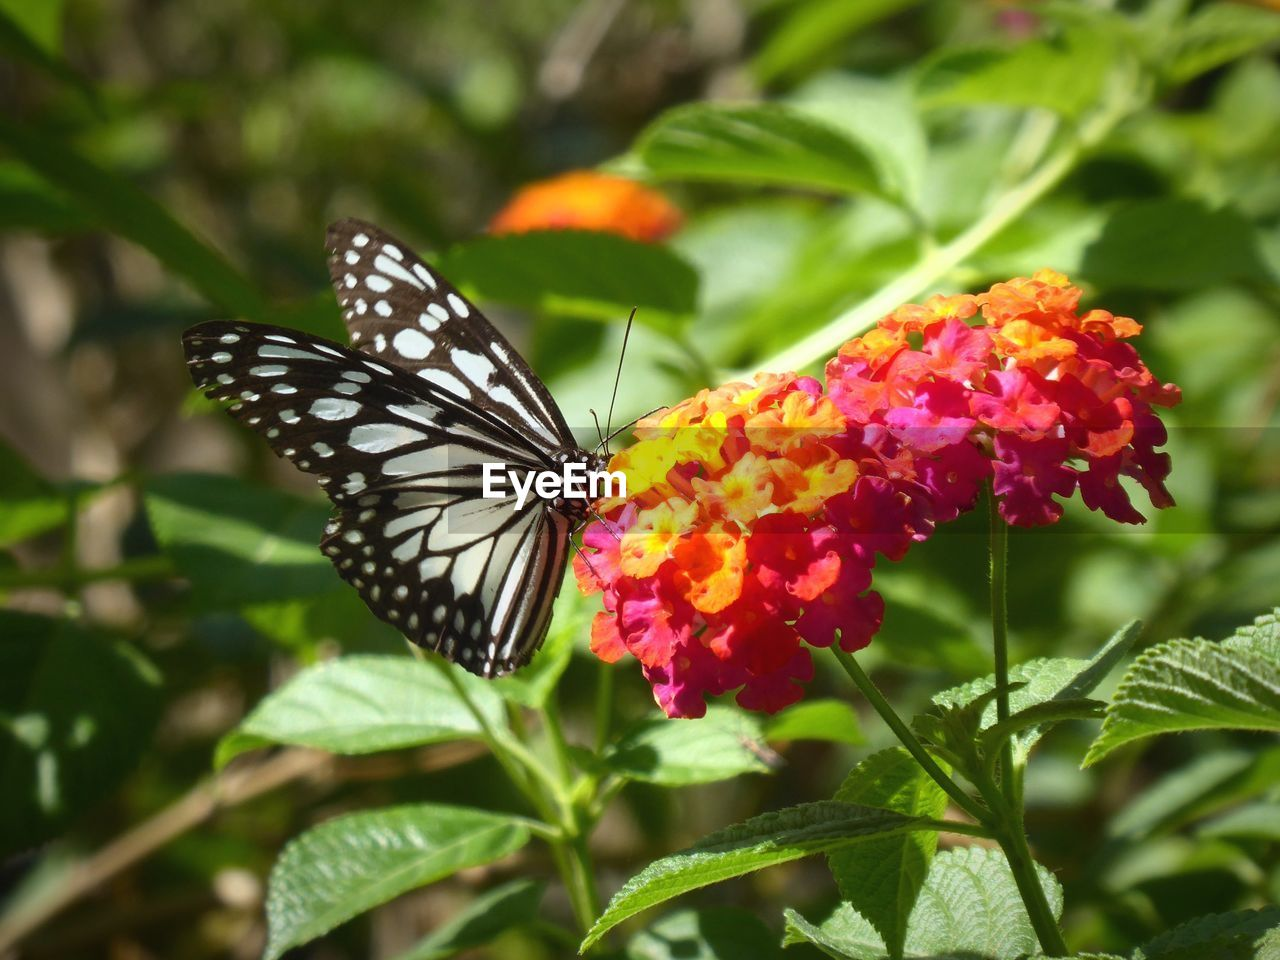 flower, beauty in nature, flowering plant, animal wildlife, butterfly - insect, animal wing, fragility, vulnerability, plant, insect, freshness, growth, animal themes, invertebrate, animals in the wild, animal, close-up, one animal, petal, nature, flower head, pollination, no people, lantana, outdoors, butterfly